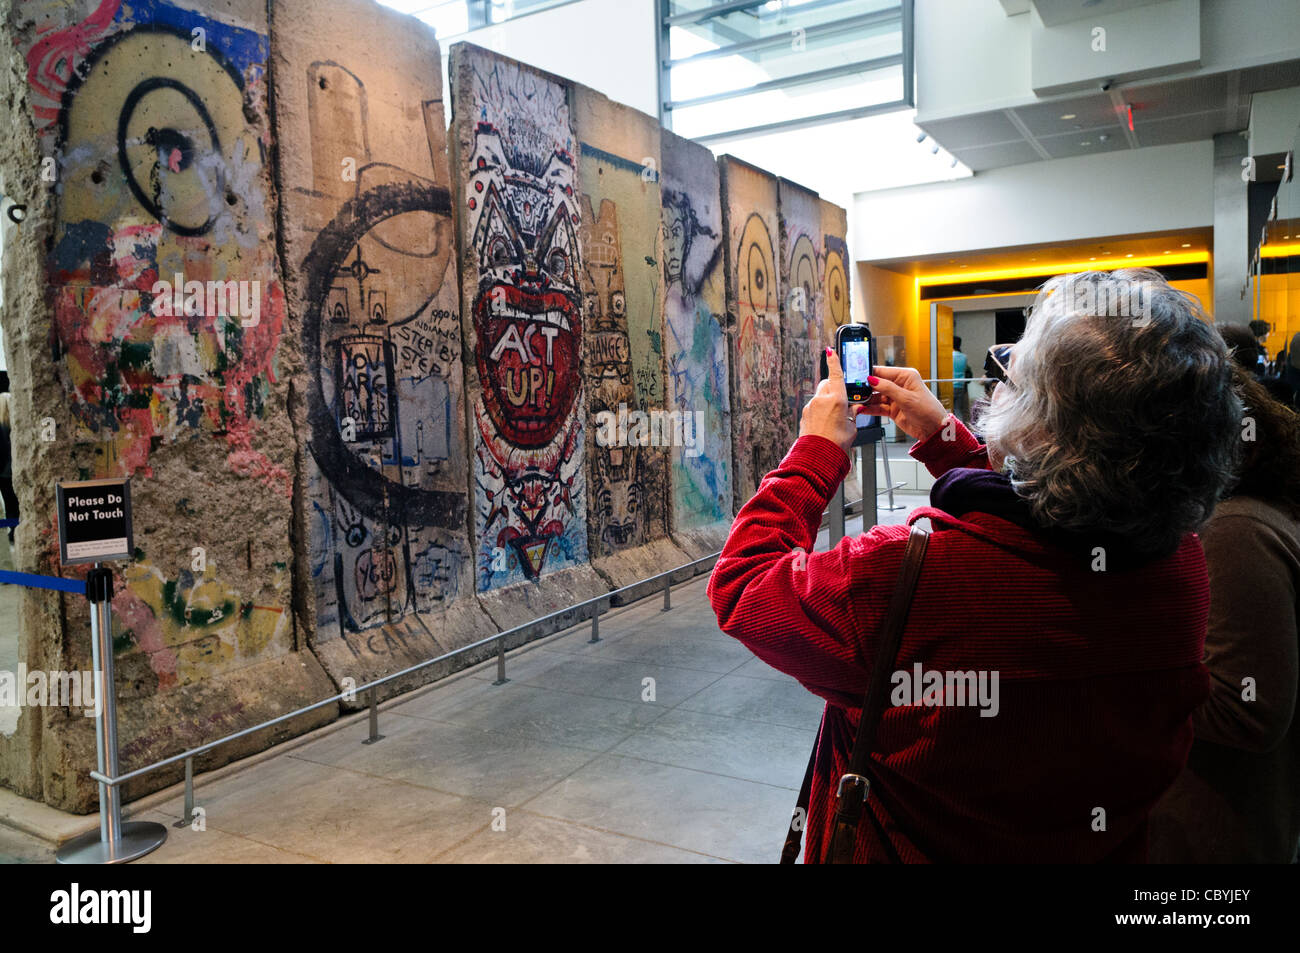 WASHINGTON DC, USA - Tourists use a smartphone to take a photo of the large section of the Berlin Wall at the Newseum - Stock Image